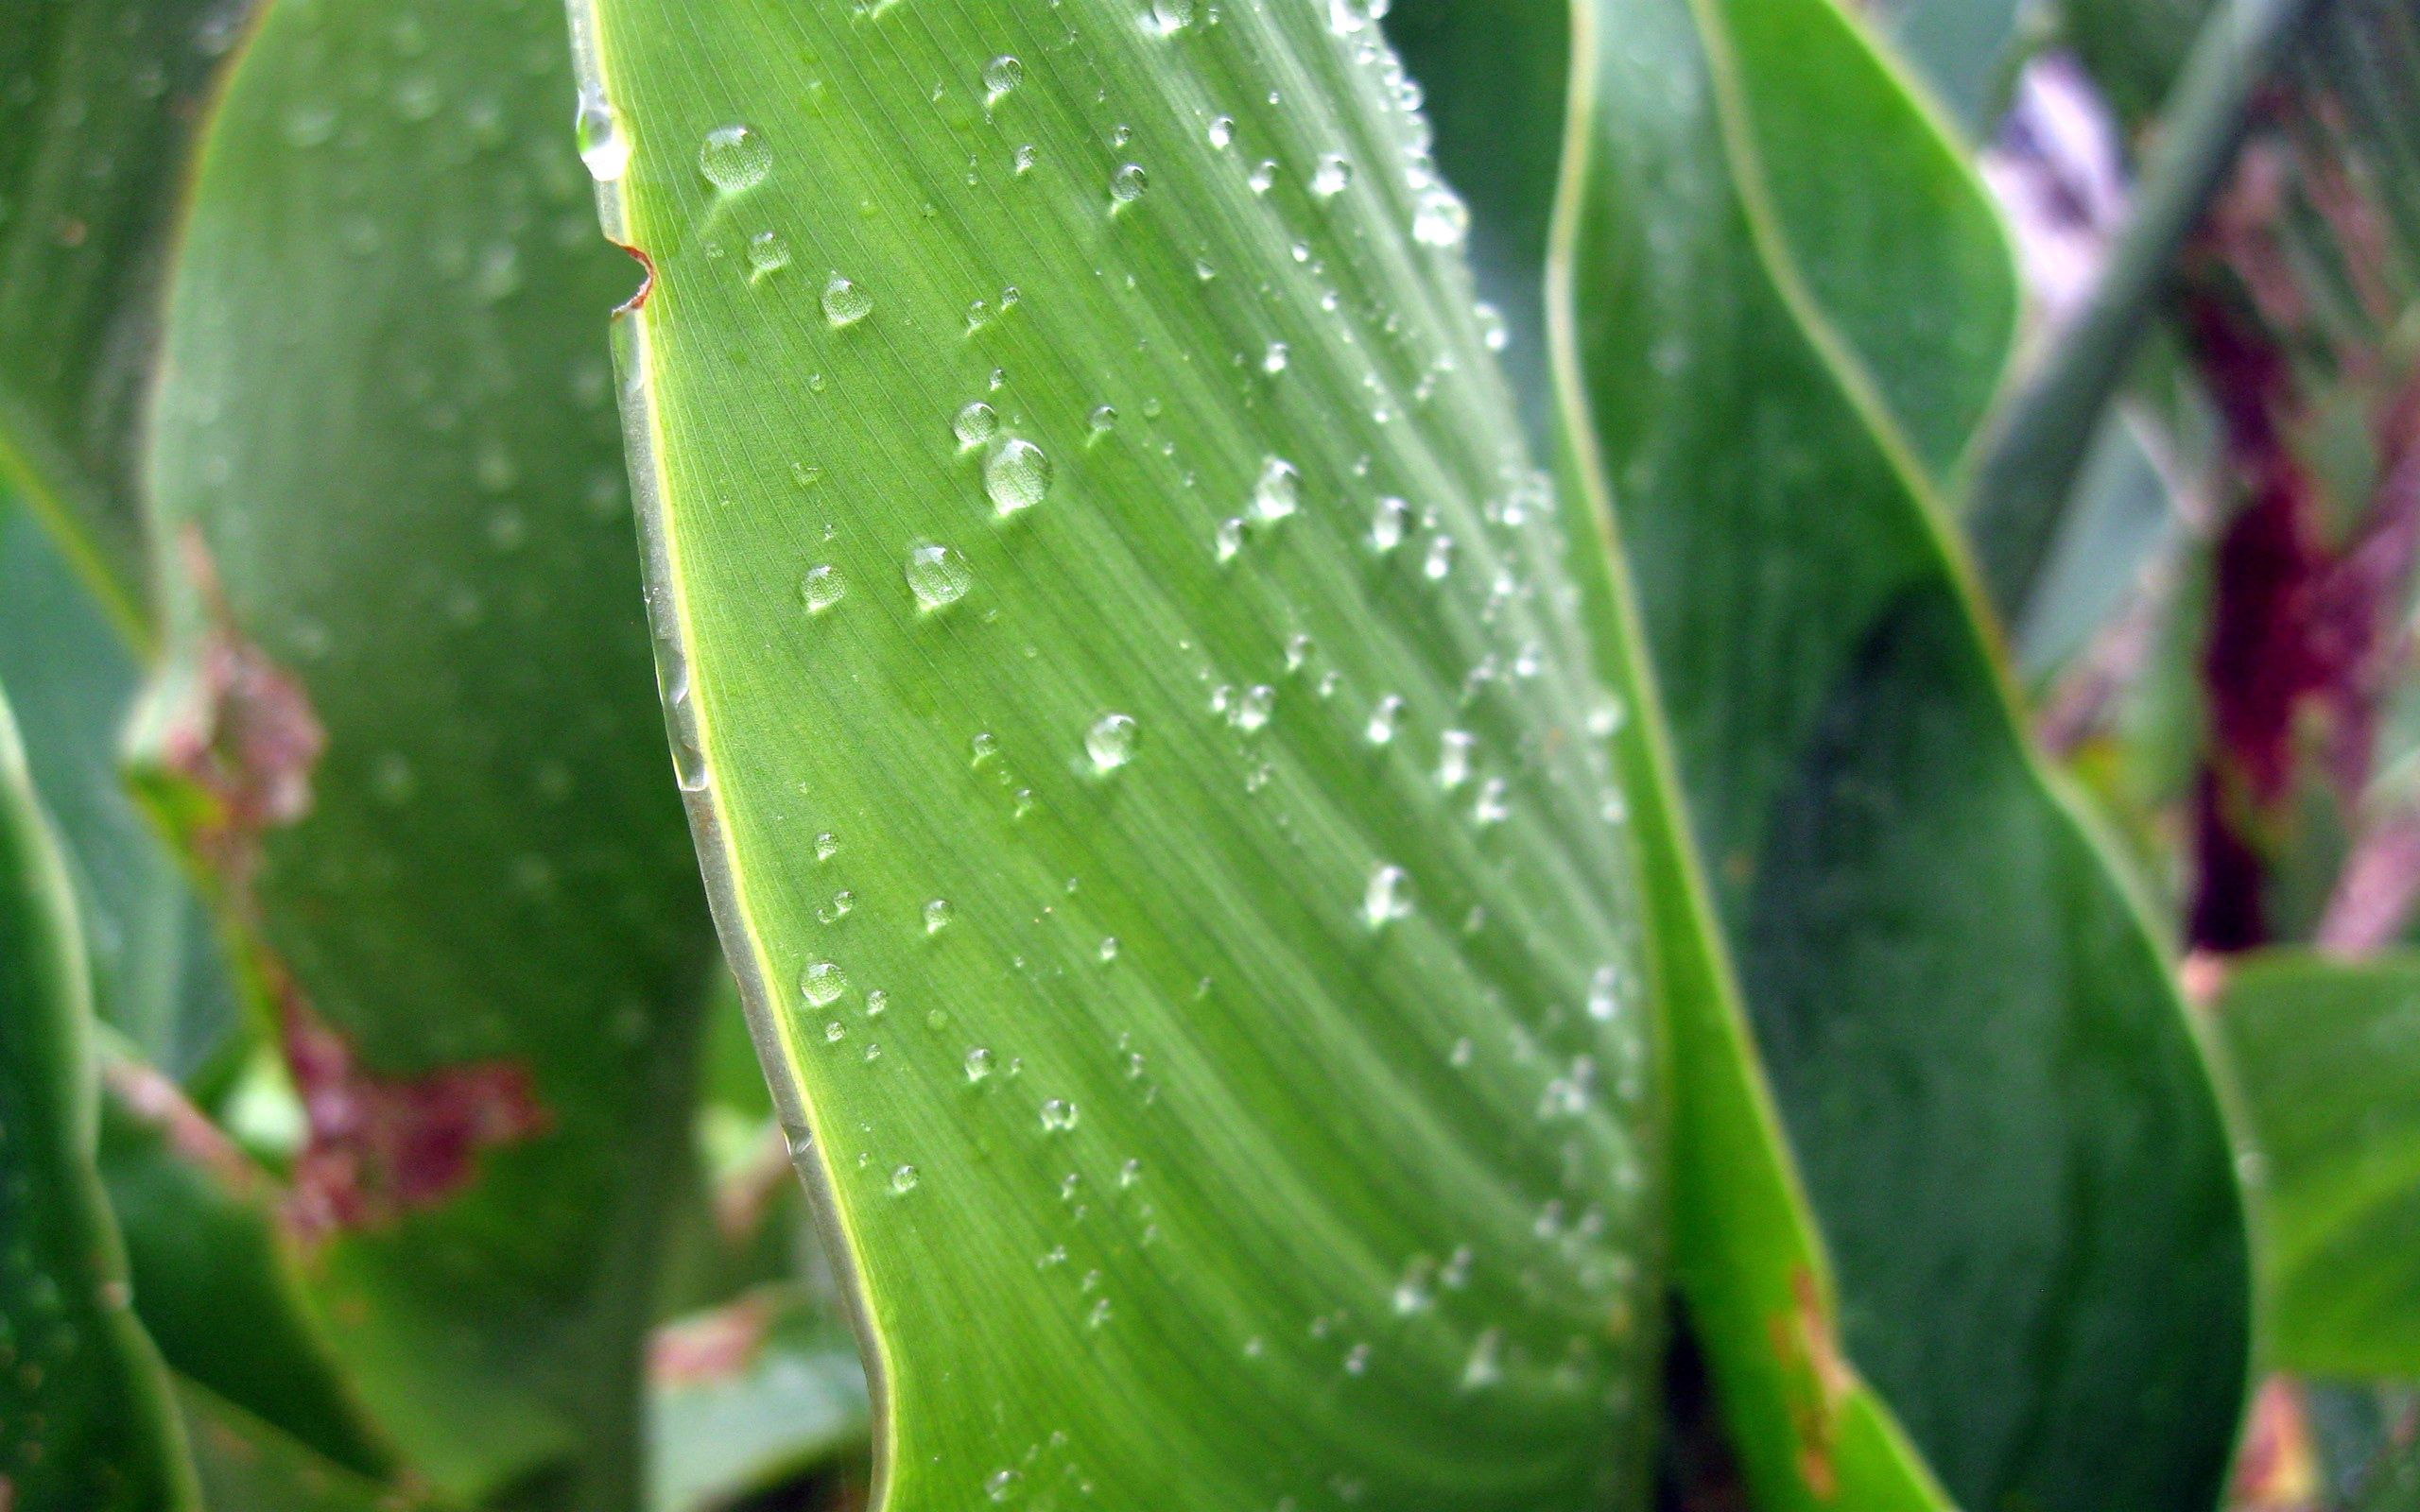 103065 download wallpaper Macro, Plant, Drops, Surface, Dew screensavers and pictures for free